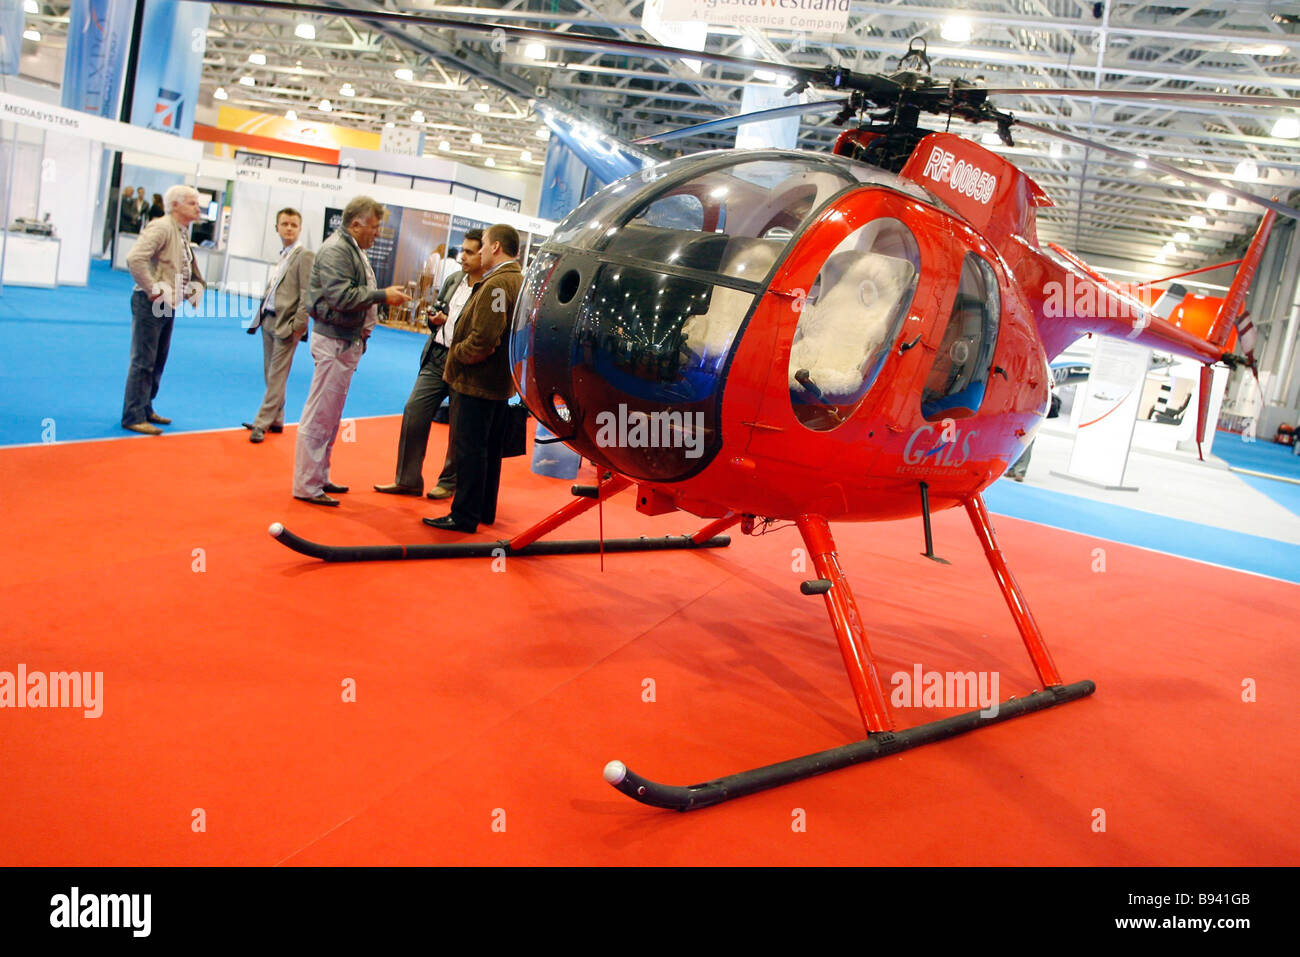 A helicopter MD 500 at the 2nd International Business Aviation Exhibition Jet Expo 2007 Crocus Expo - Stock Image